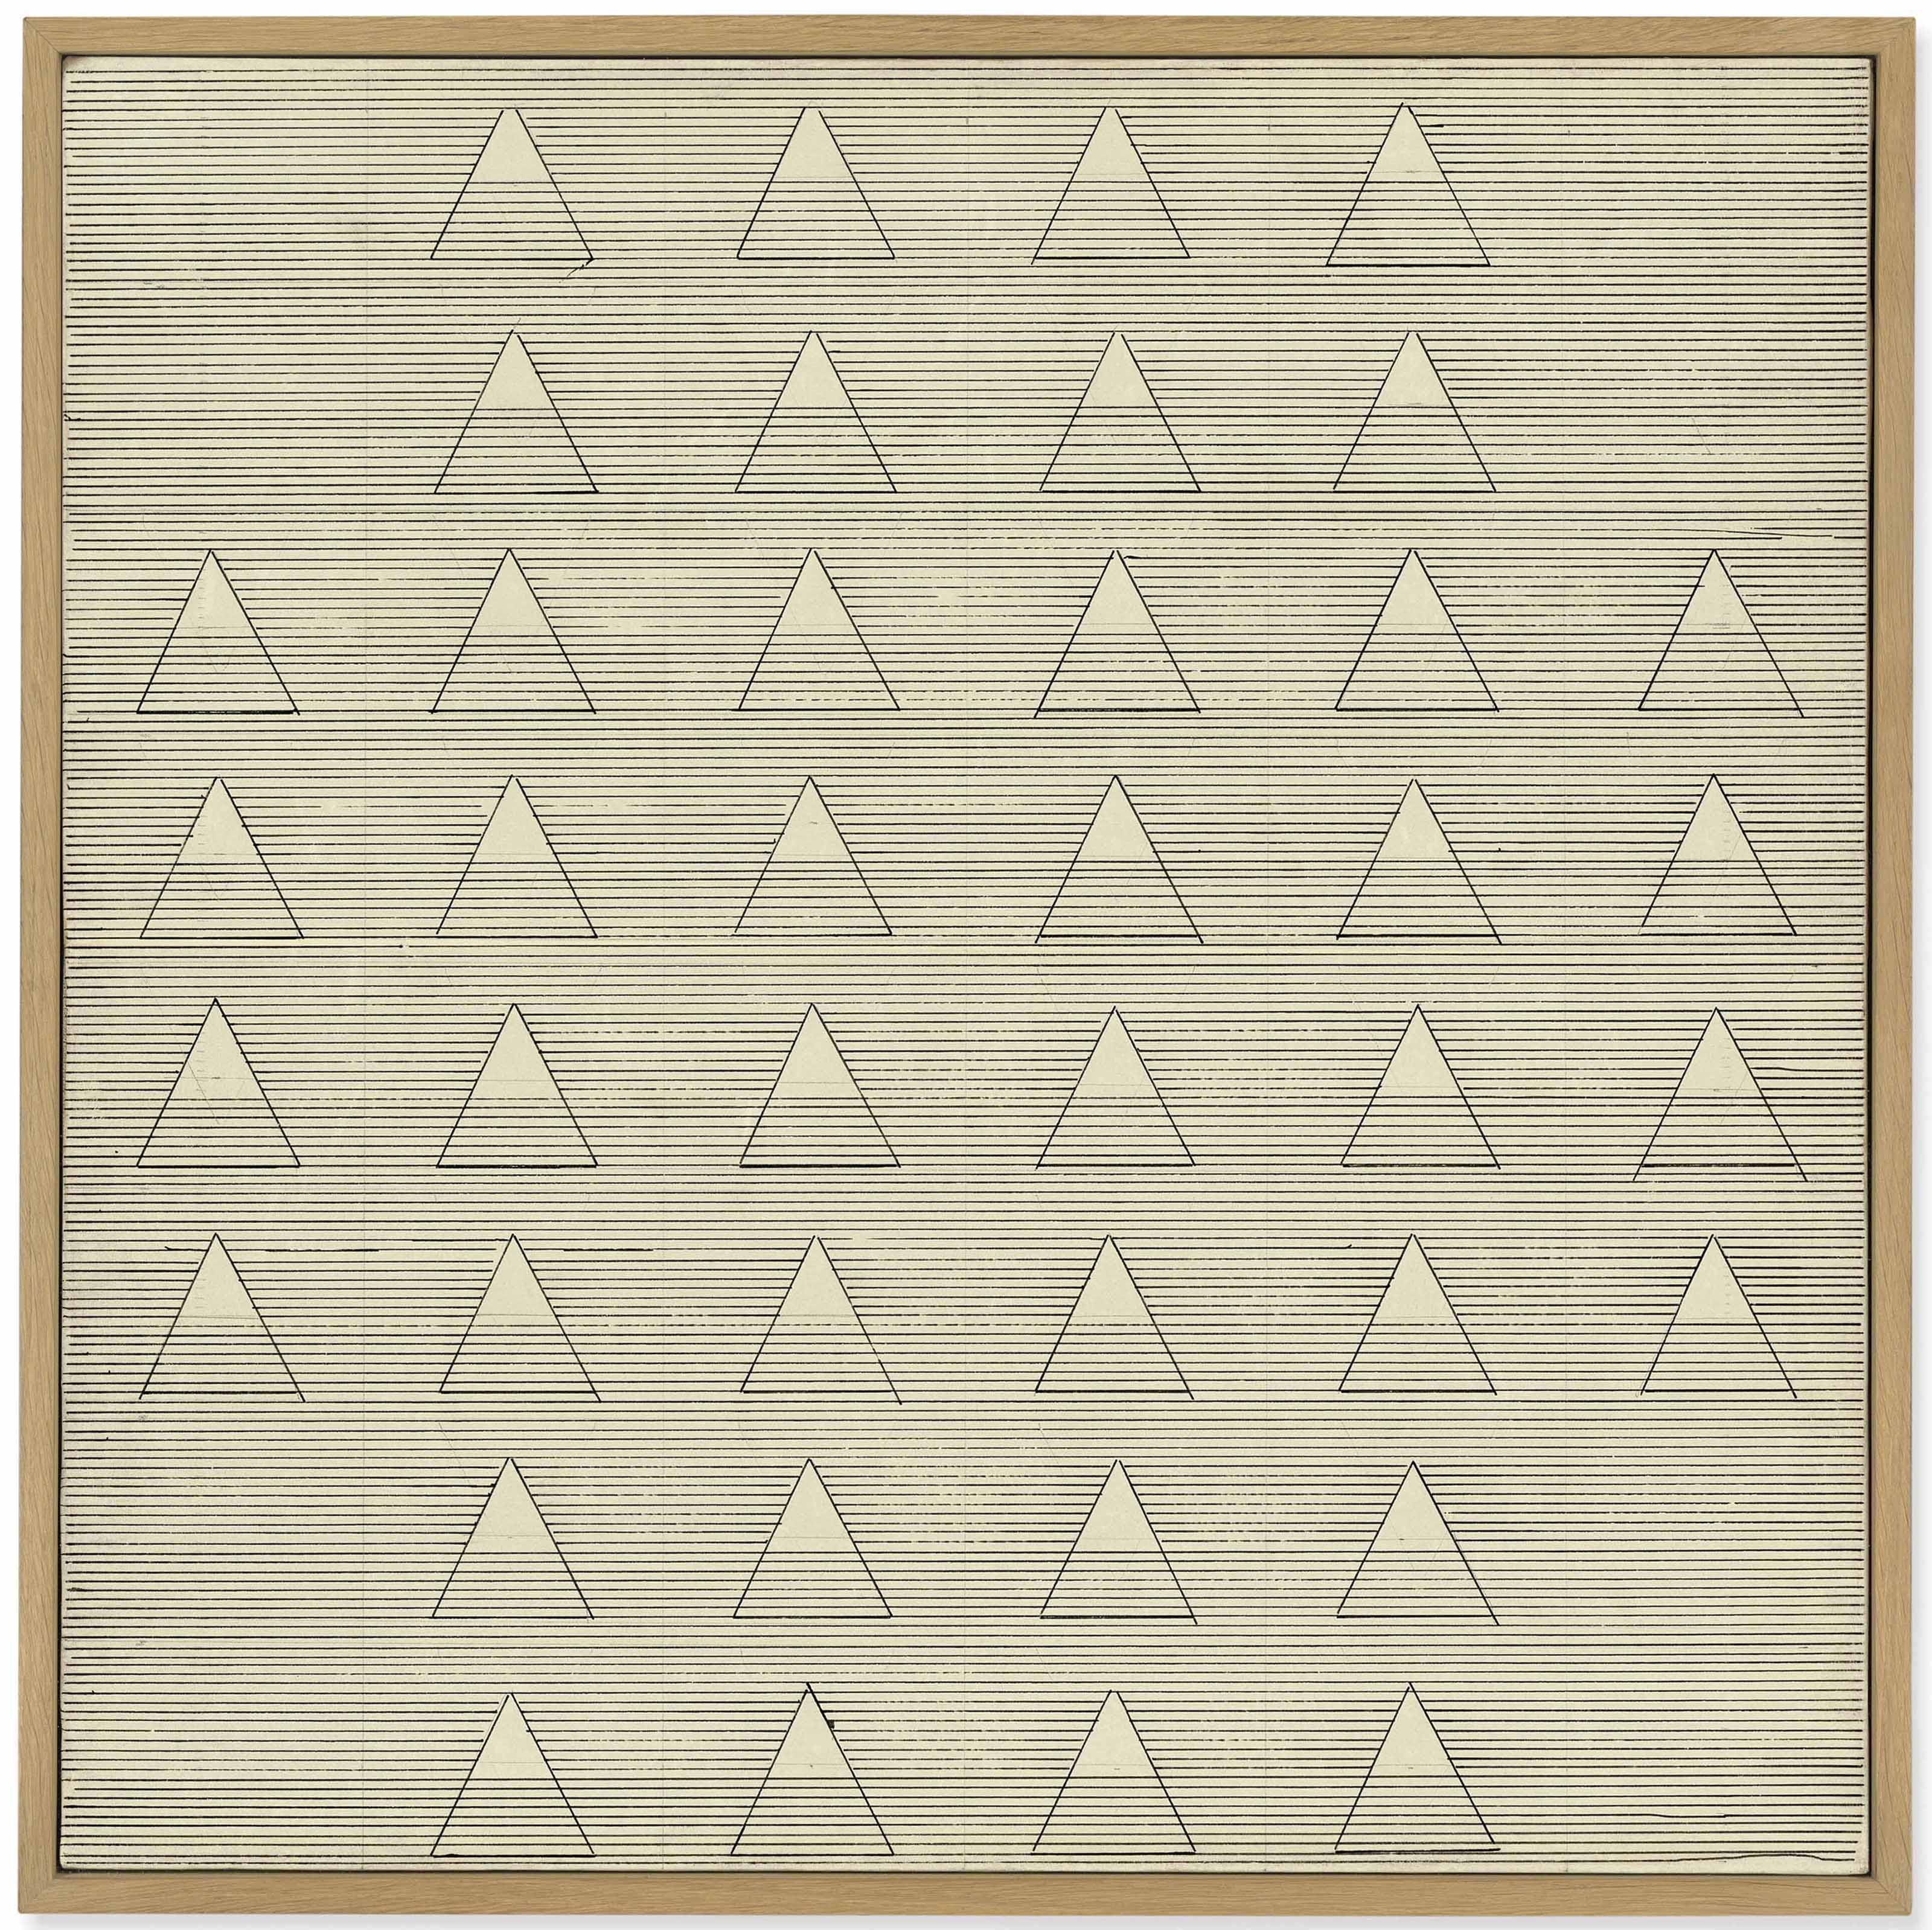 Agnes Martin (1912-2004), Words, 1961. 24 x 24 in (61 x 61 cm). Estimate £600,000-800,000. This lot is offered in Post-War and Contemporary Art Evening Auction on 6 March 2018  at Christie's in London